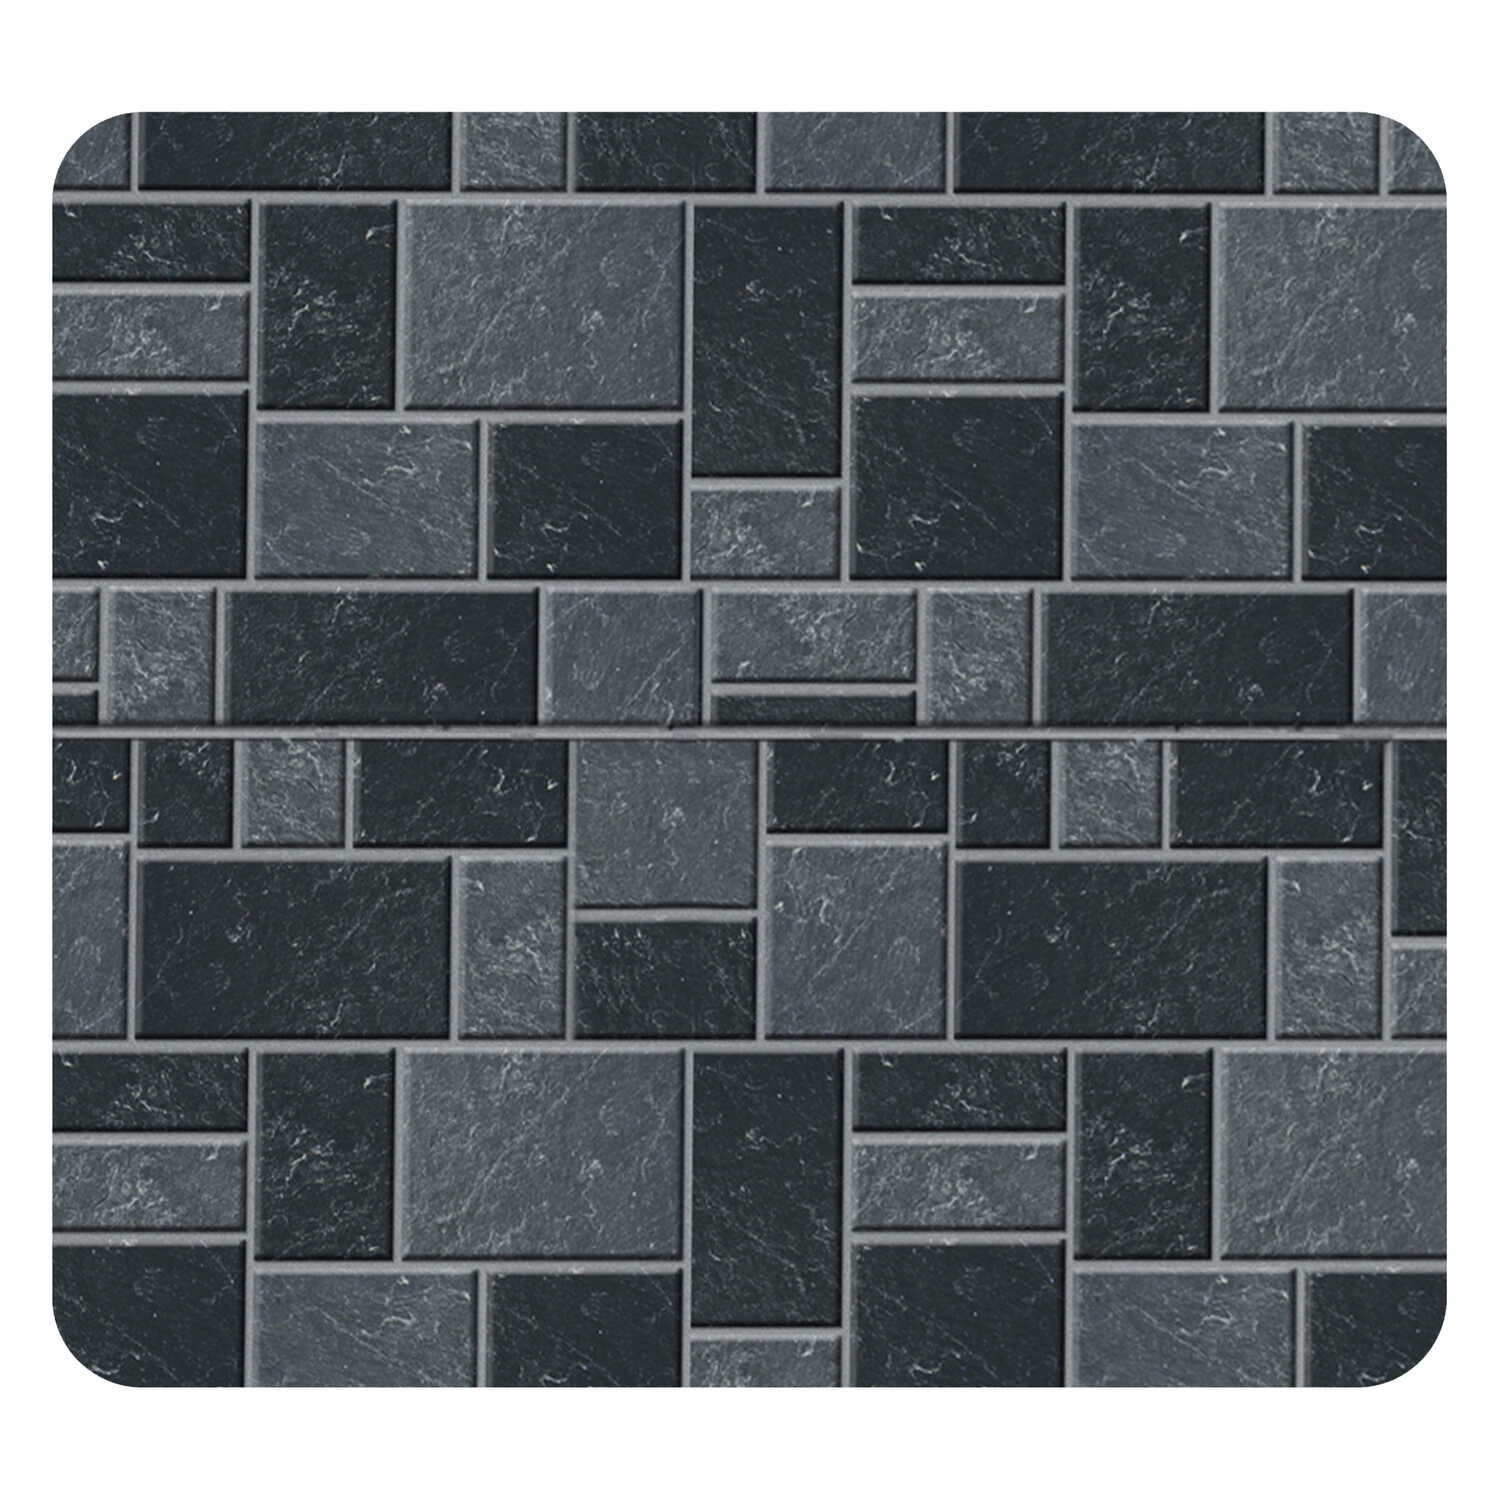 Hearth Boards: Imperial Manufacturing 42 In. W X 32 In. L Slate Stove